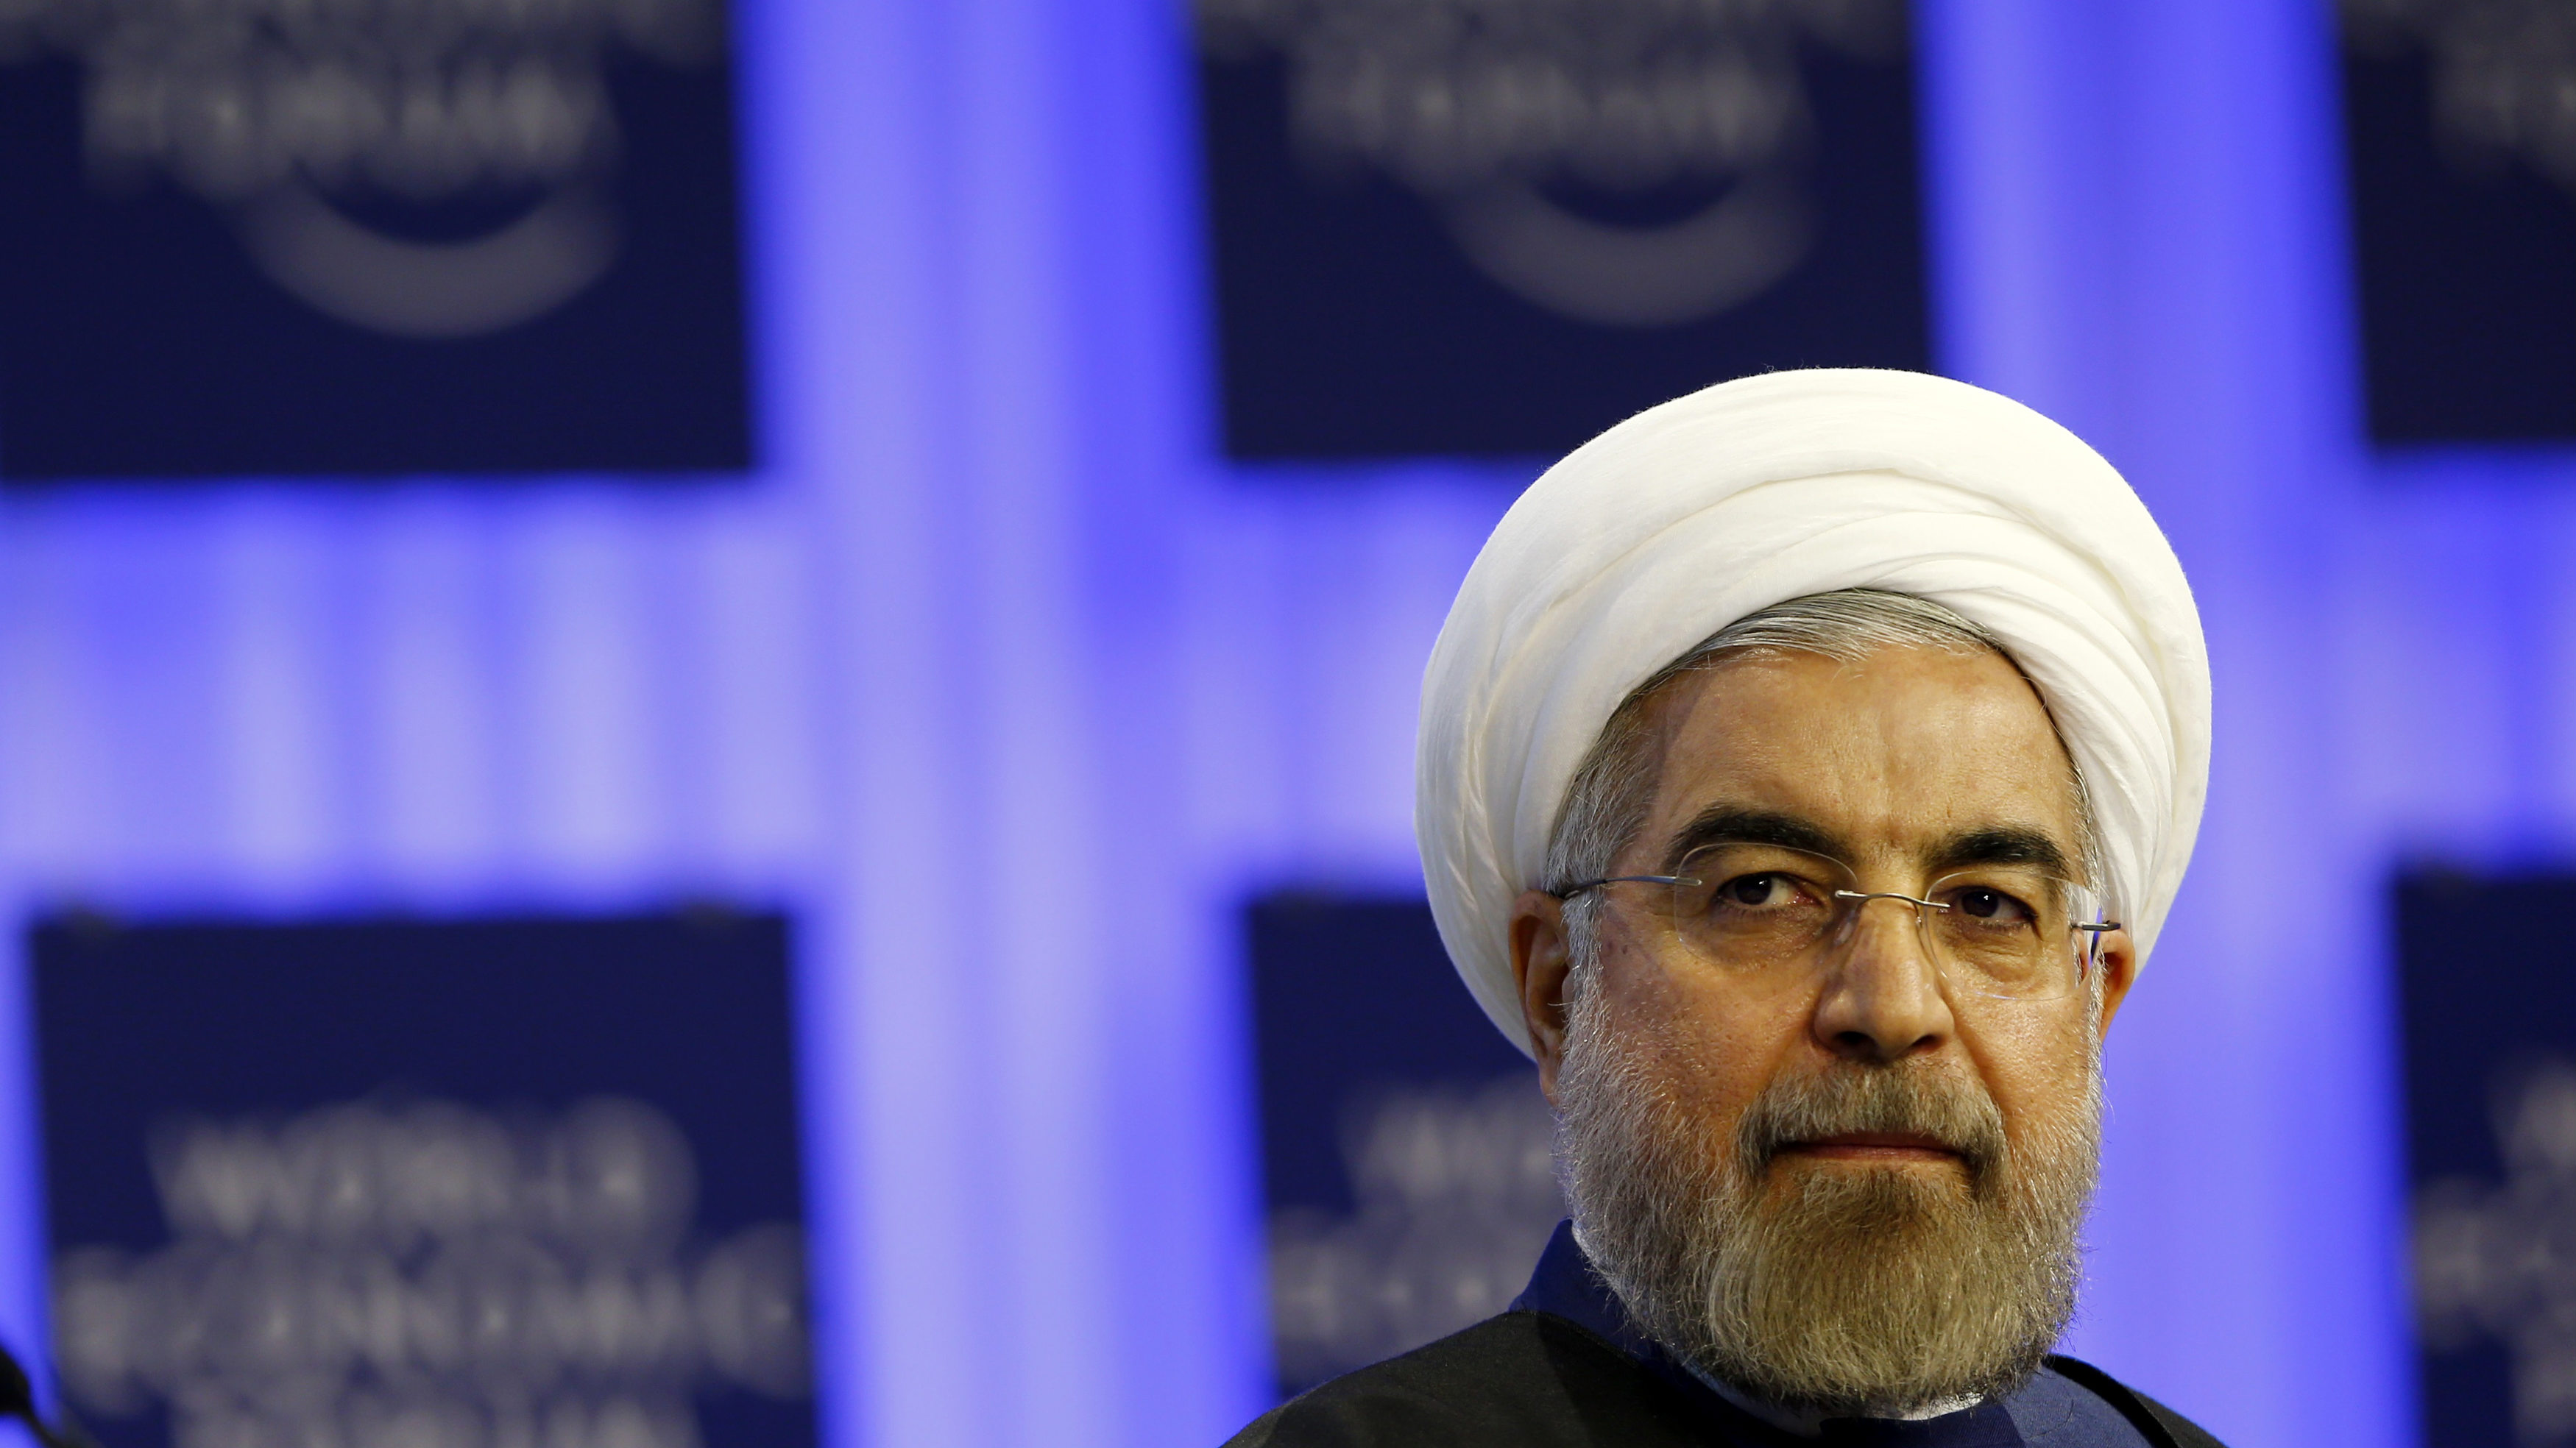 Iran's President Hassan Rouhani attends a session at the annual meeting of the World Economic Forum (WEF) in Davos.